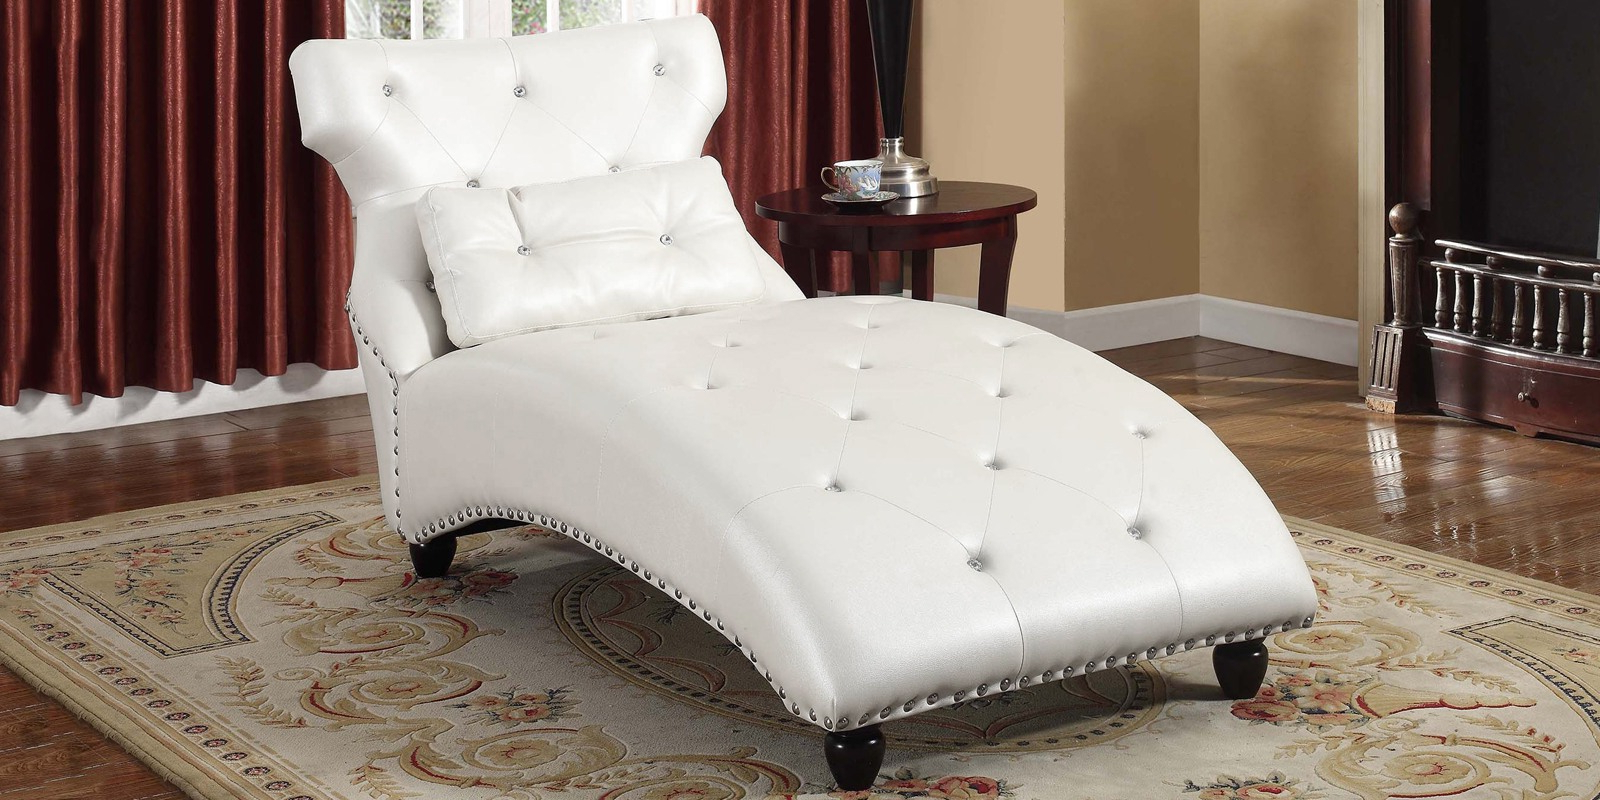 Modish Lounge Chaise In Pearl White Leatherette In Recent Pearl Chaise Lounges (View 9 of 25)